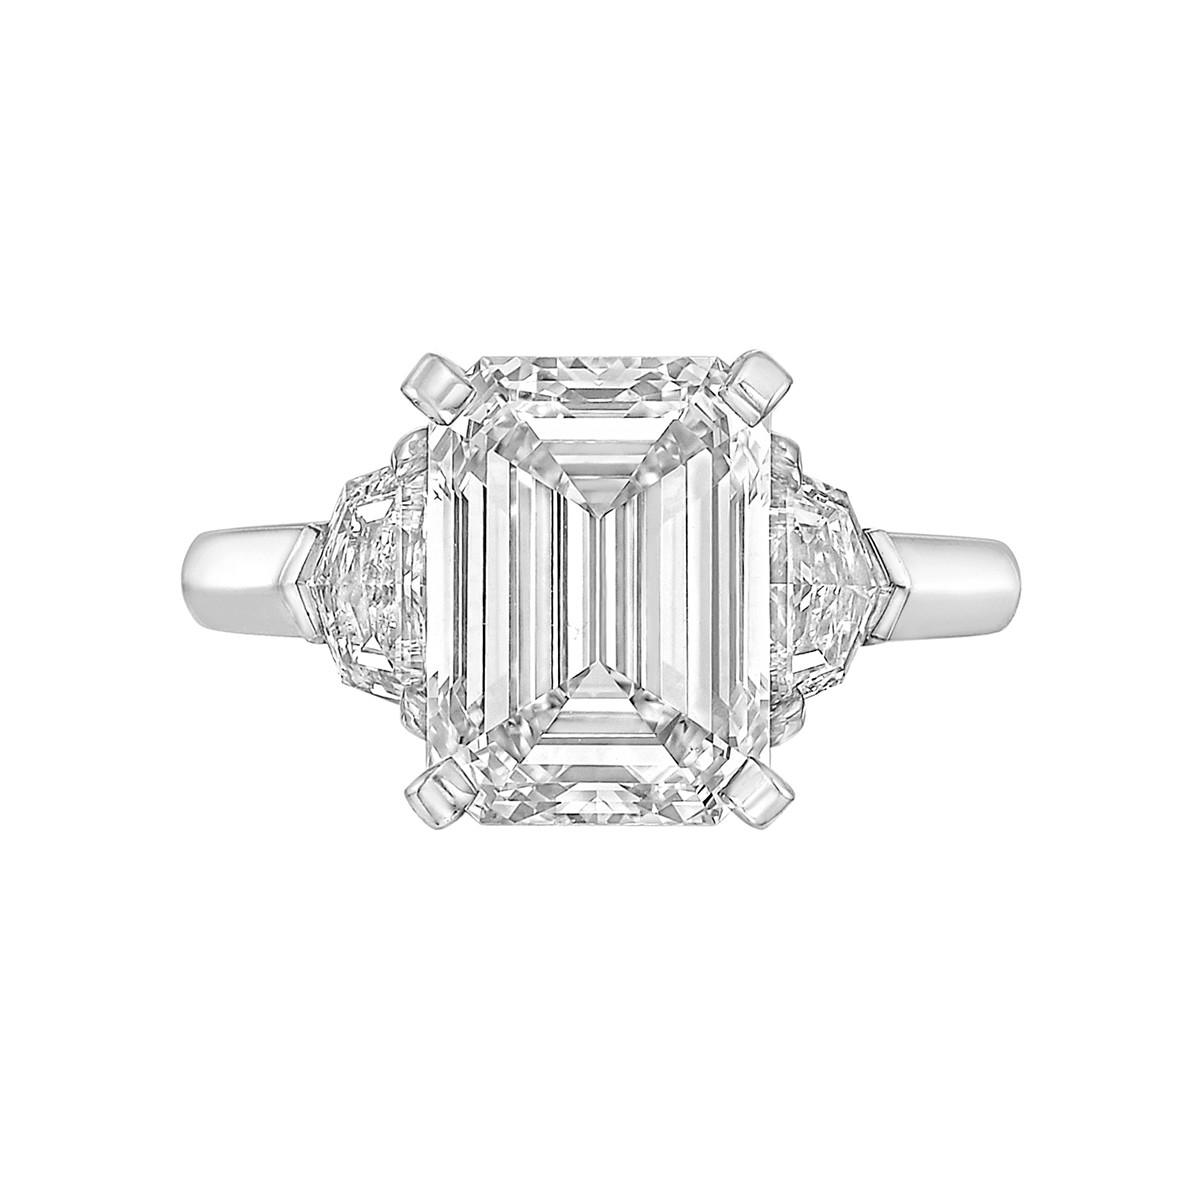 4.11 Carat Emerald-Cut Diamond Ring